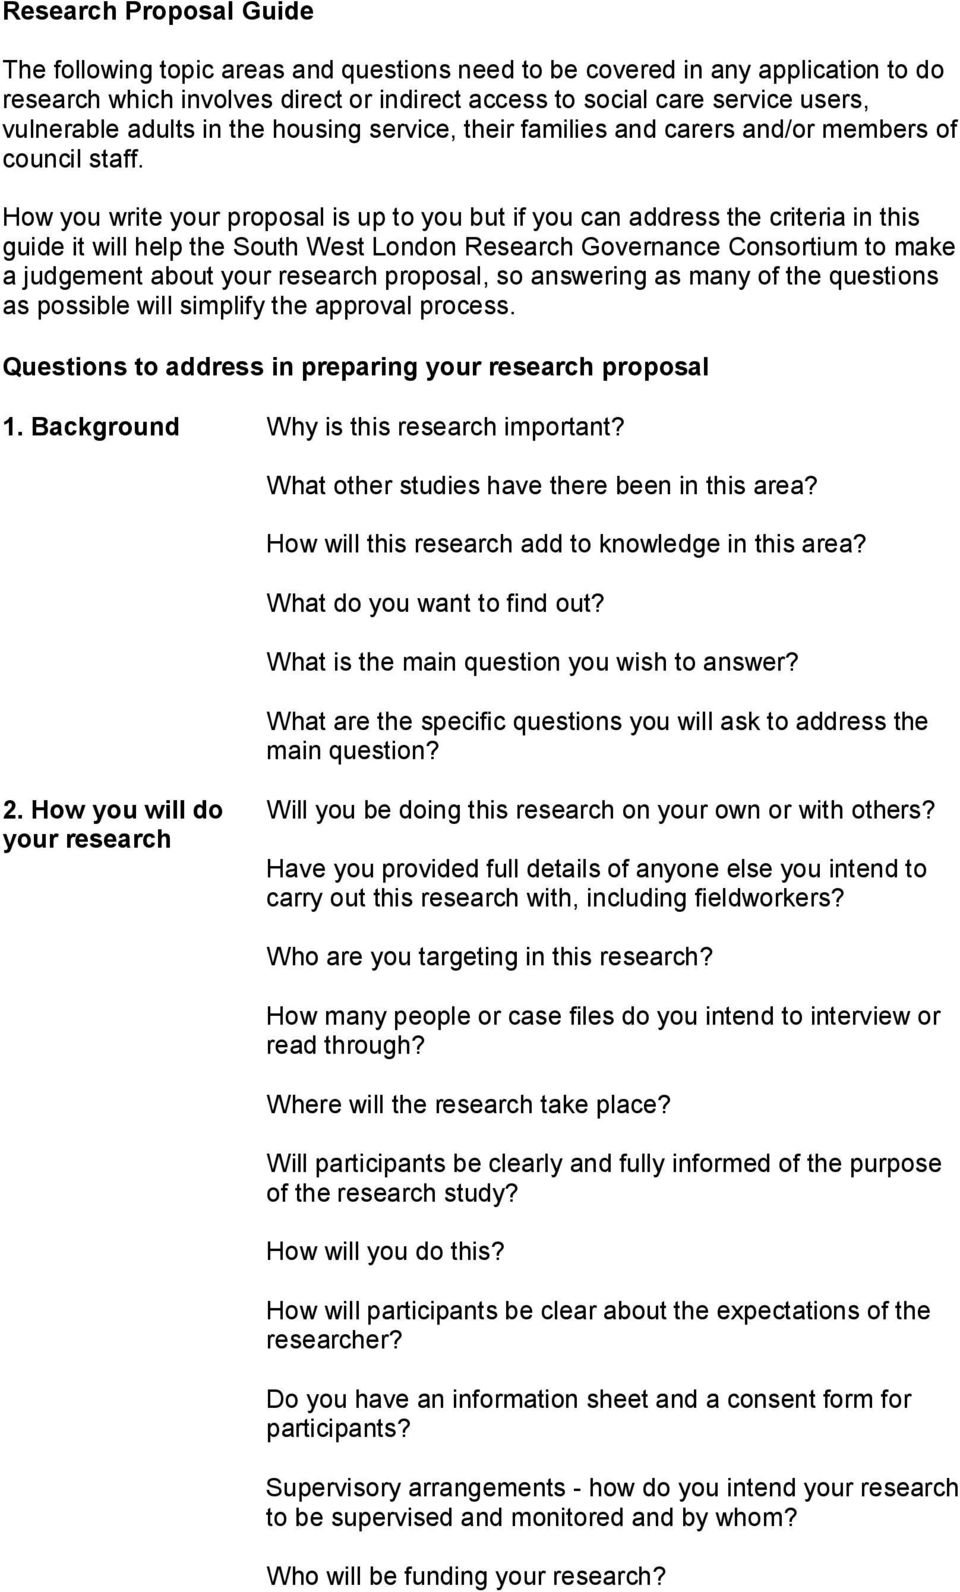 How you write your proposal is up to you but if you can address the criteria in this guide it will help the South West London Research Governance Consortium to make a judgement about your research